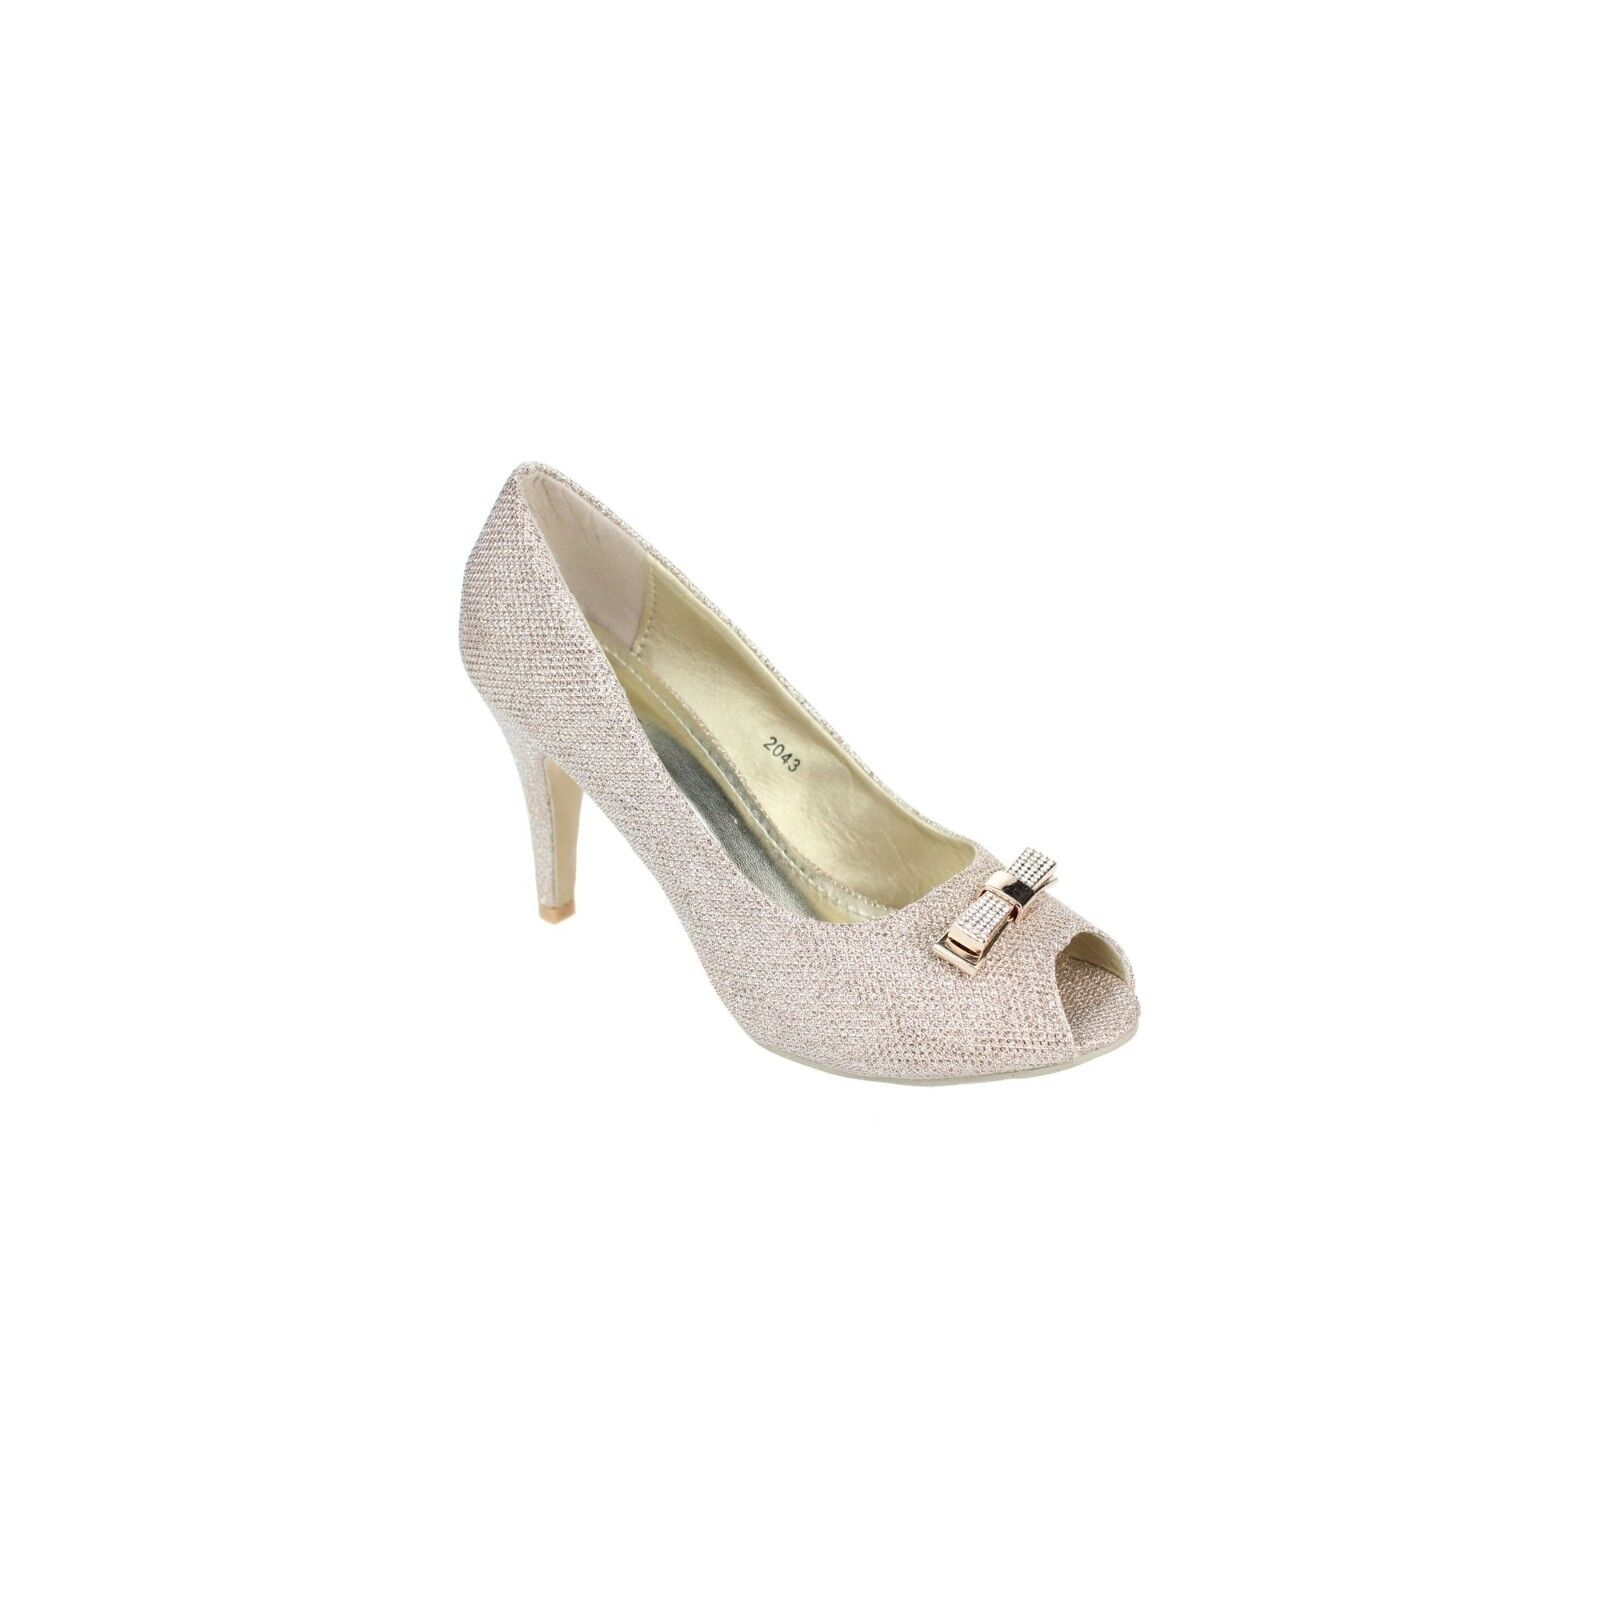 Ladies Shimmer Peep- toe Shoes- Champagne RRP£29.99 UK3 EU36 JS23 99